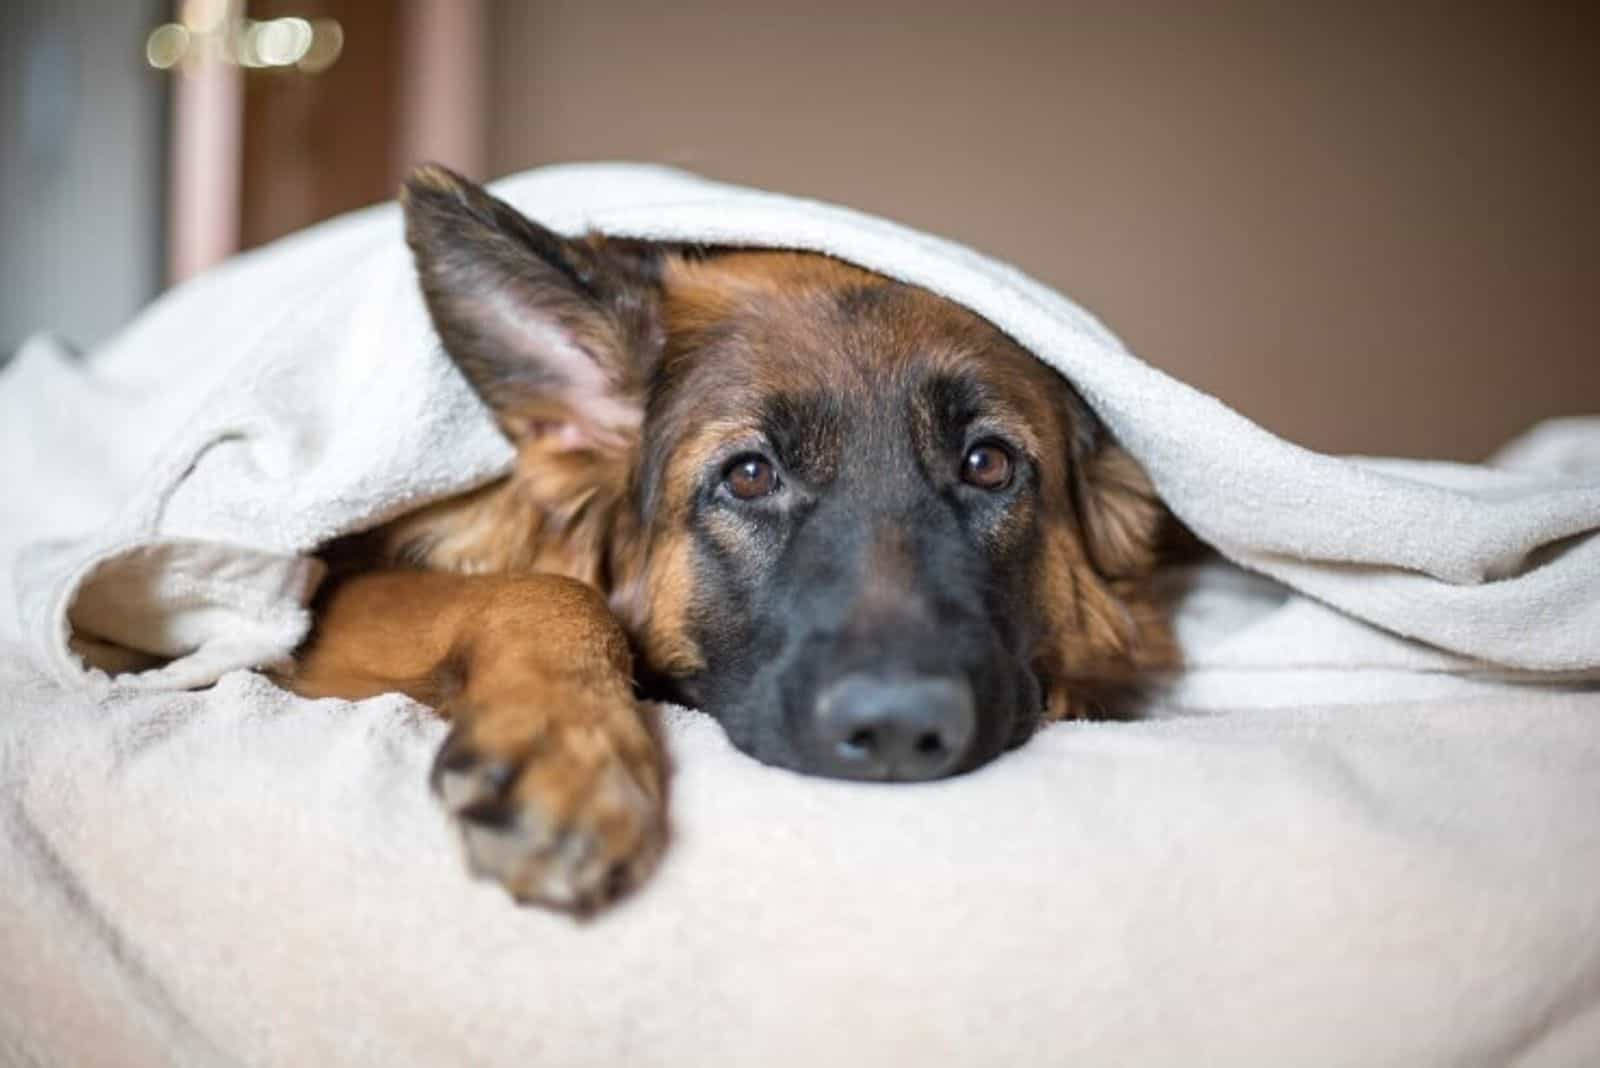 the crossbreed dog lies in bed wrapped in a white blanket